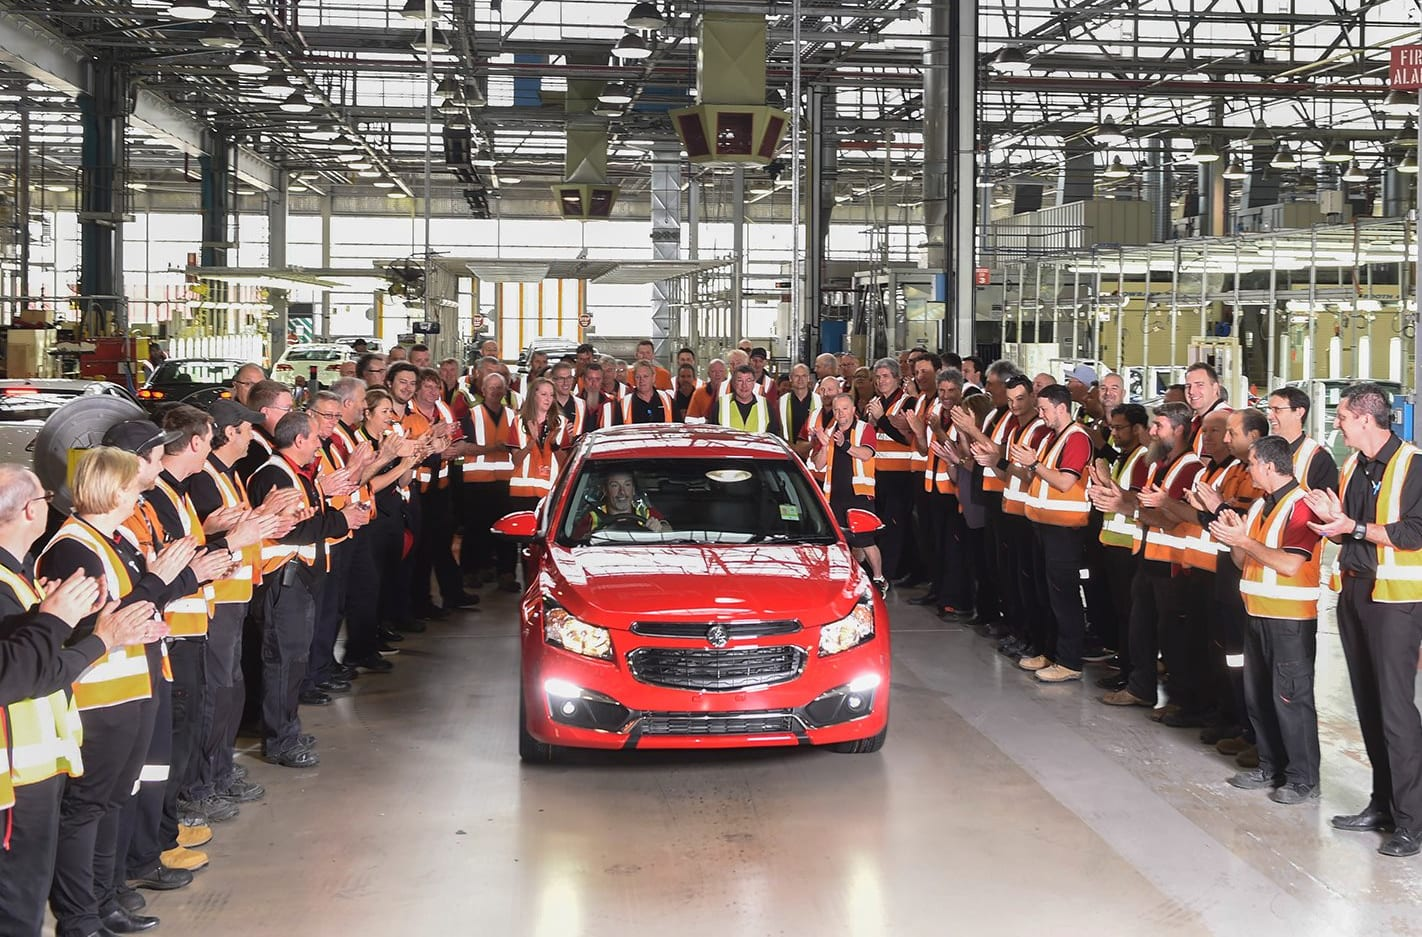 GM's income slashed after European withdrawal